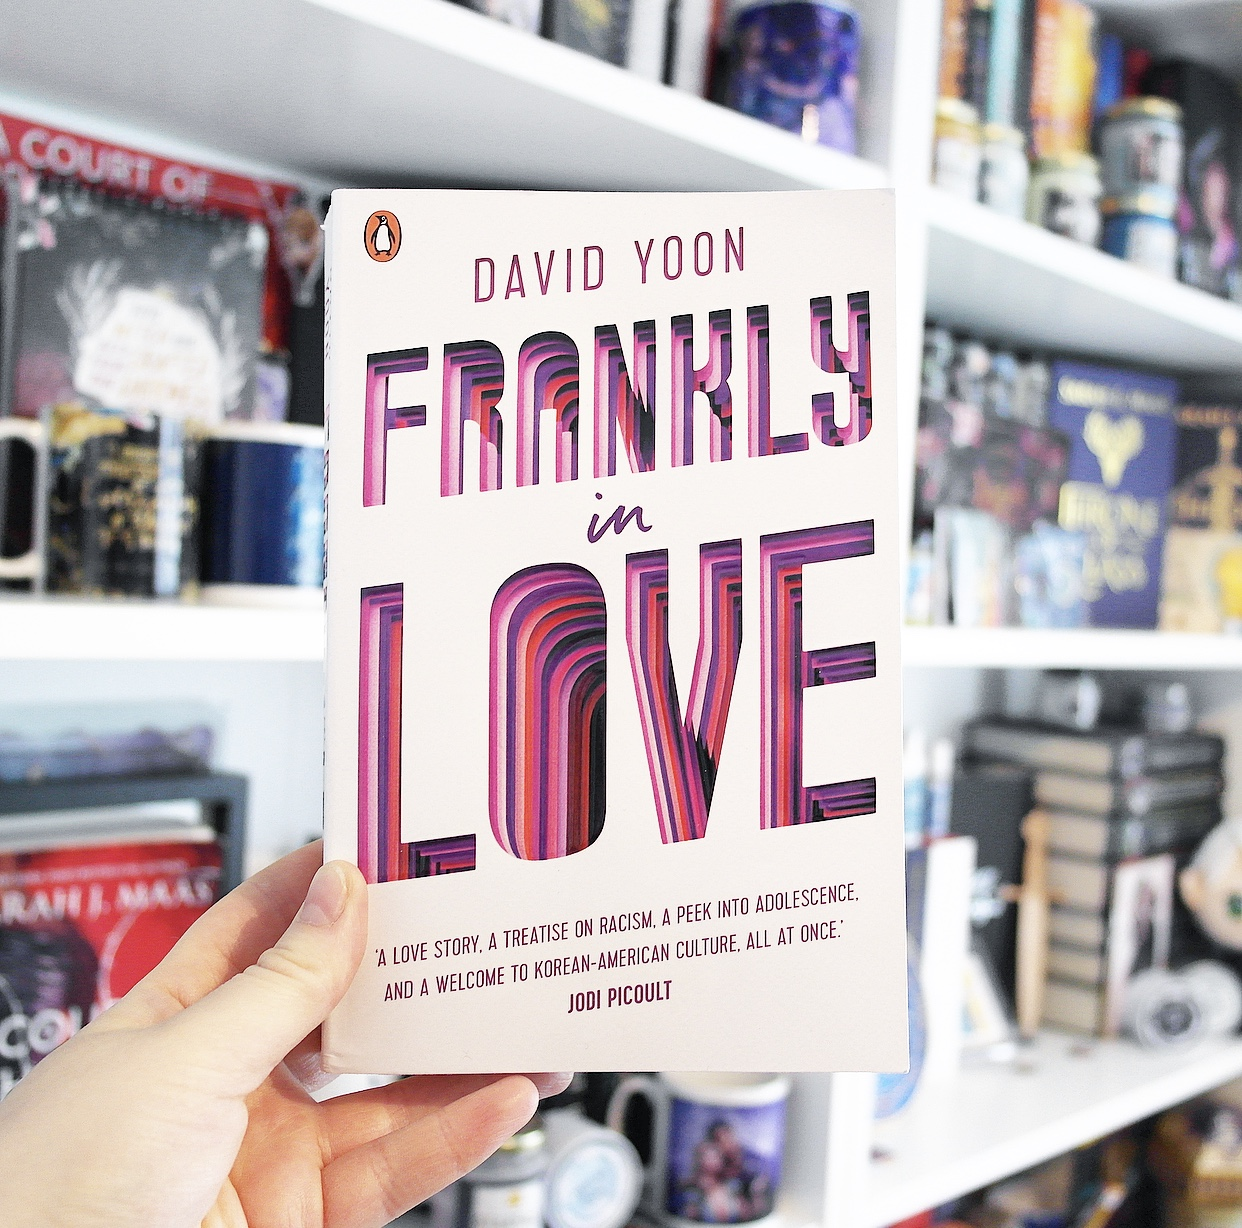 Non-Spoiler Review: Frankly in Love by David Yoon